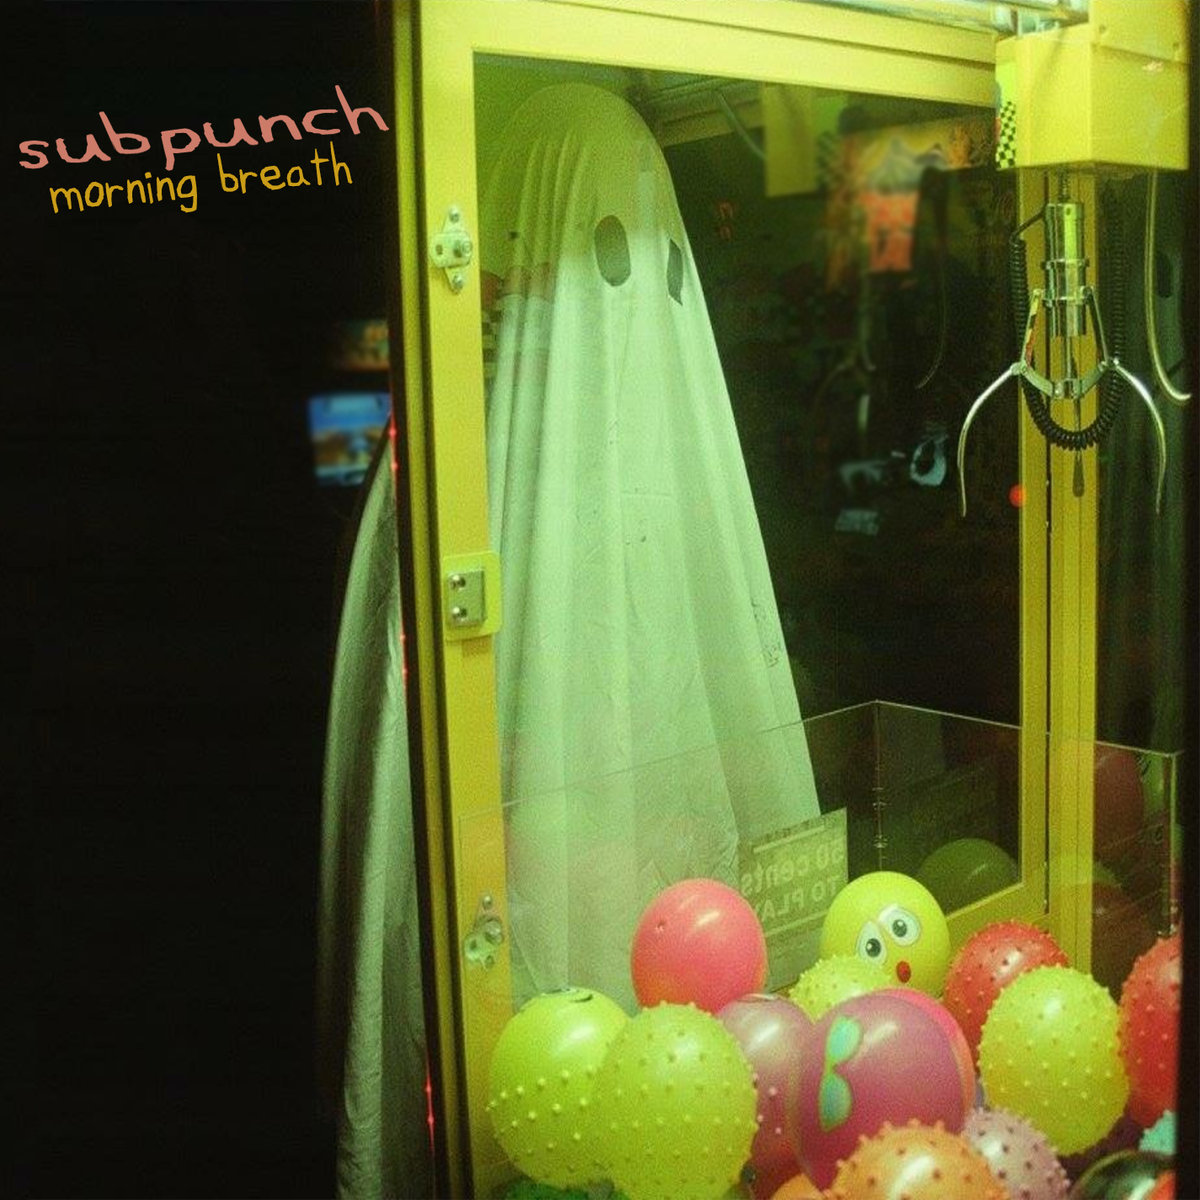 SubPunch - Morning Breath